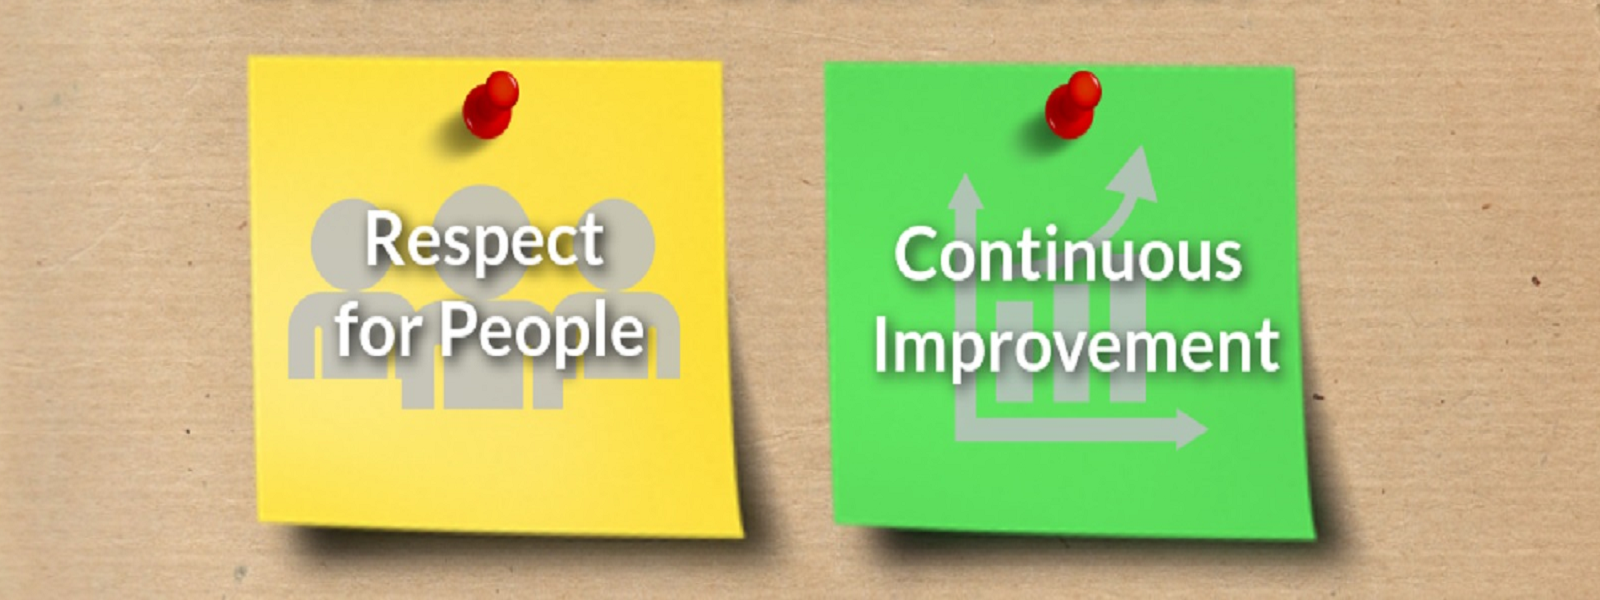 Post-its on pin board saying respect for people and continuous improvement